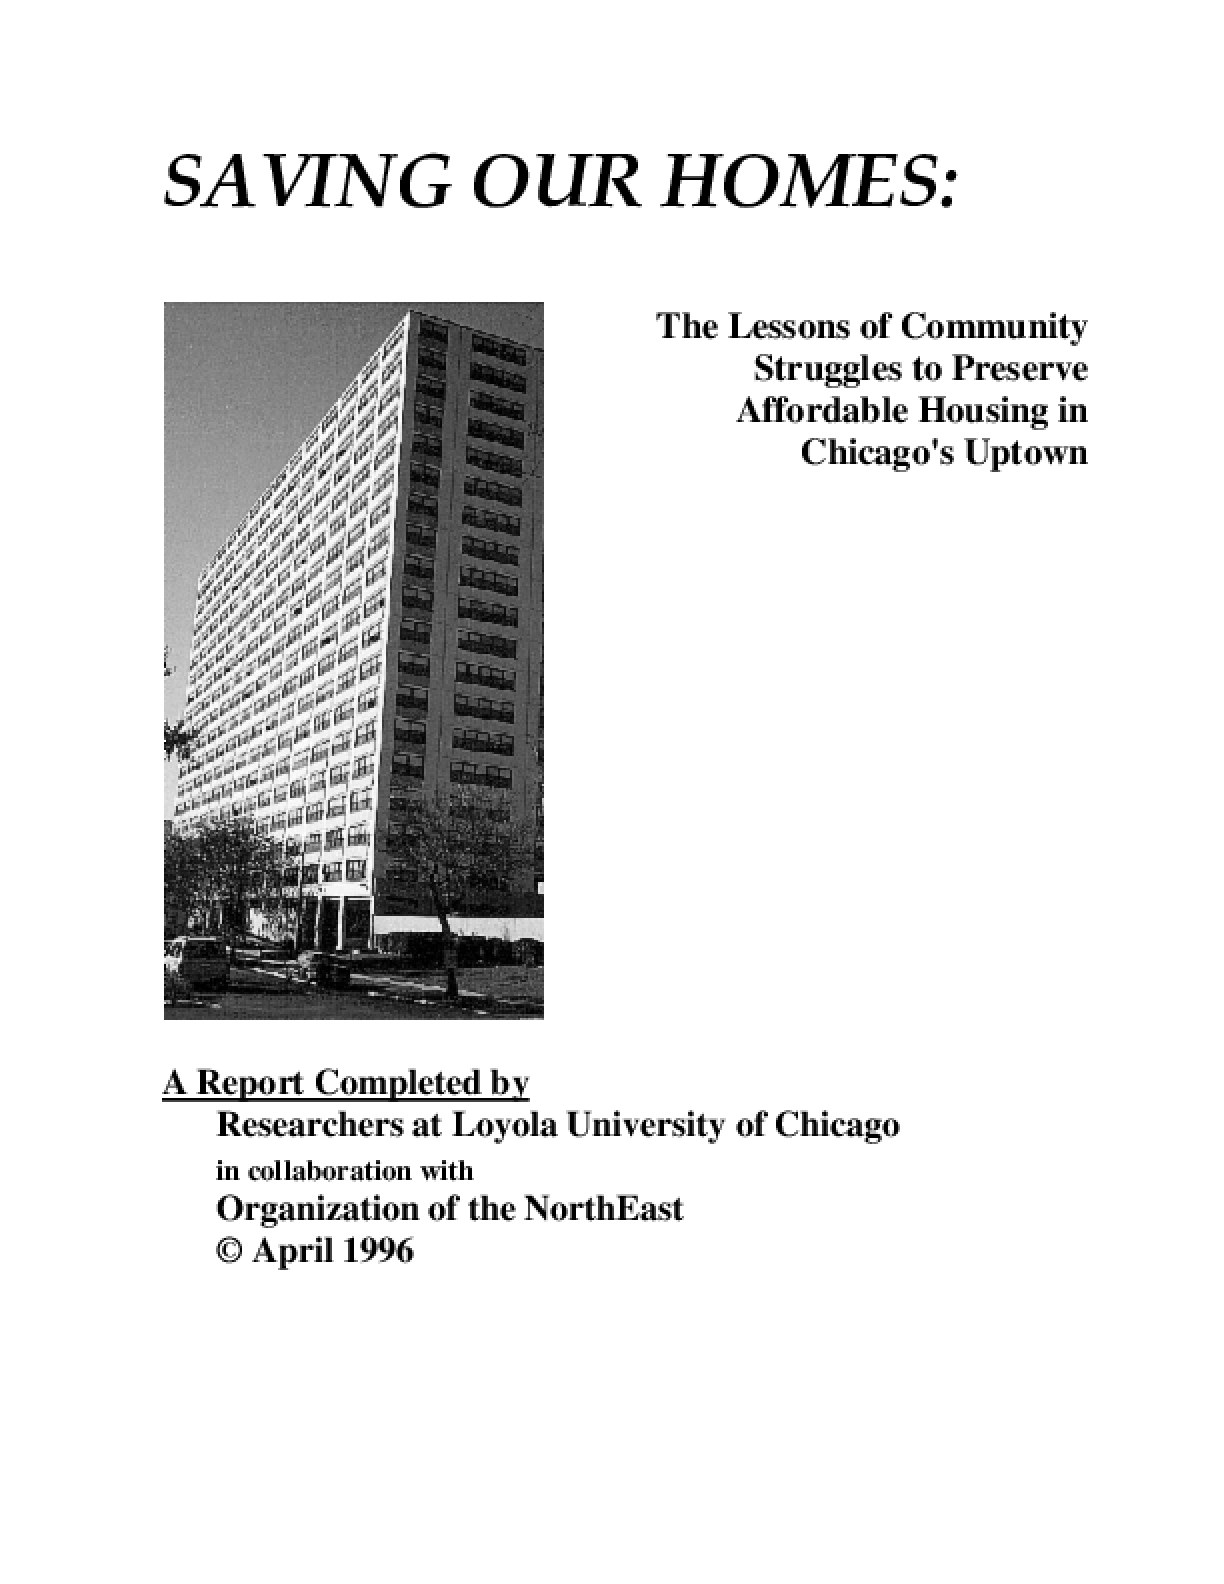 Saving Our Homes: The Lessons of Community Struggles to Preserve Affordable Housing in Chicago's Uptown